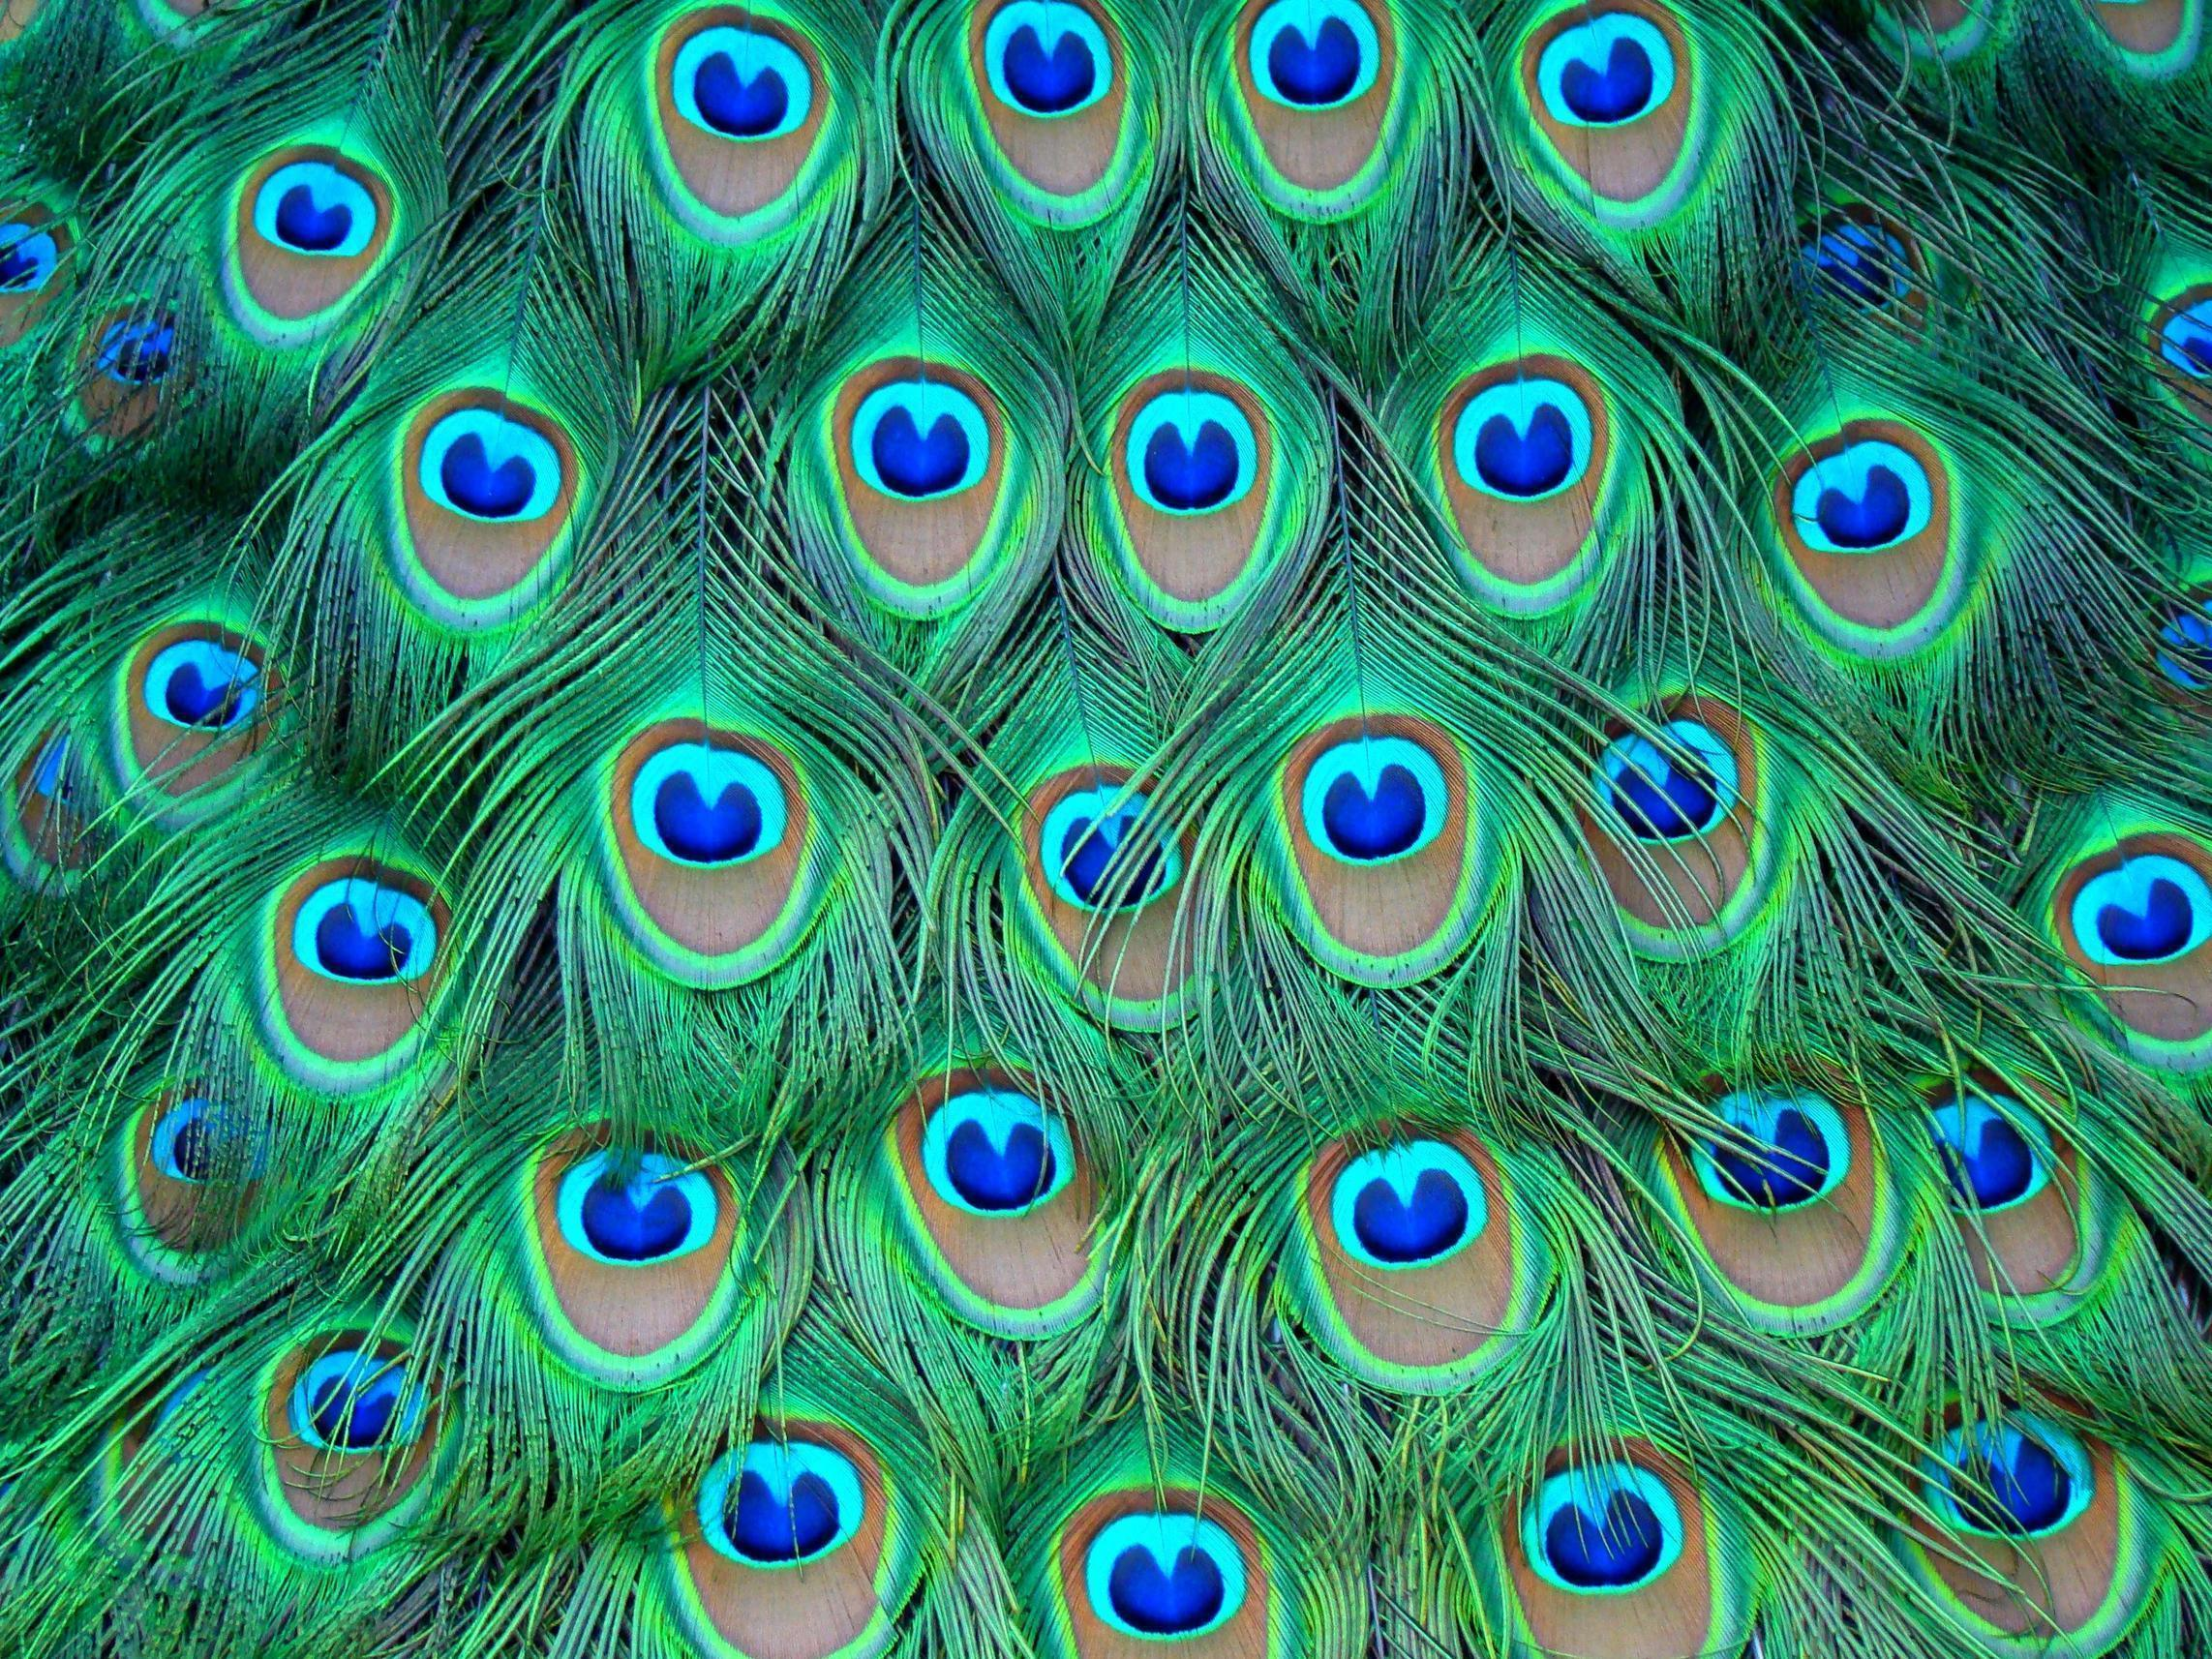 Wallpapers Of Peacock Feathers Hd